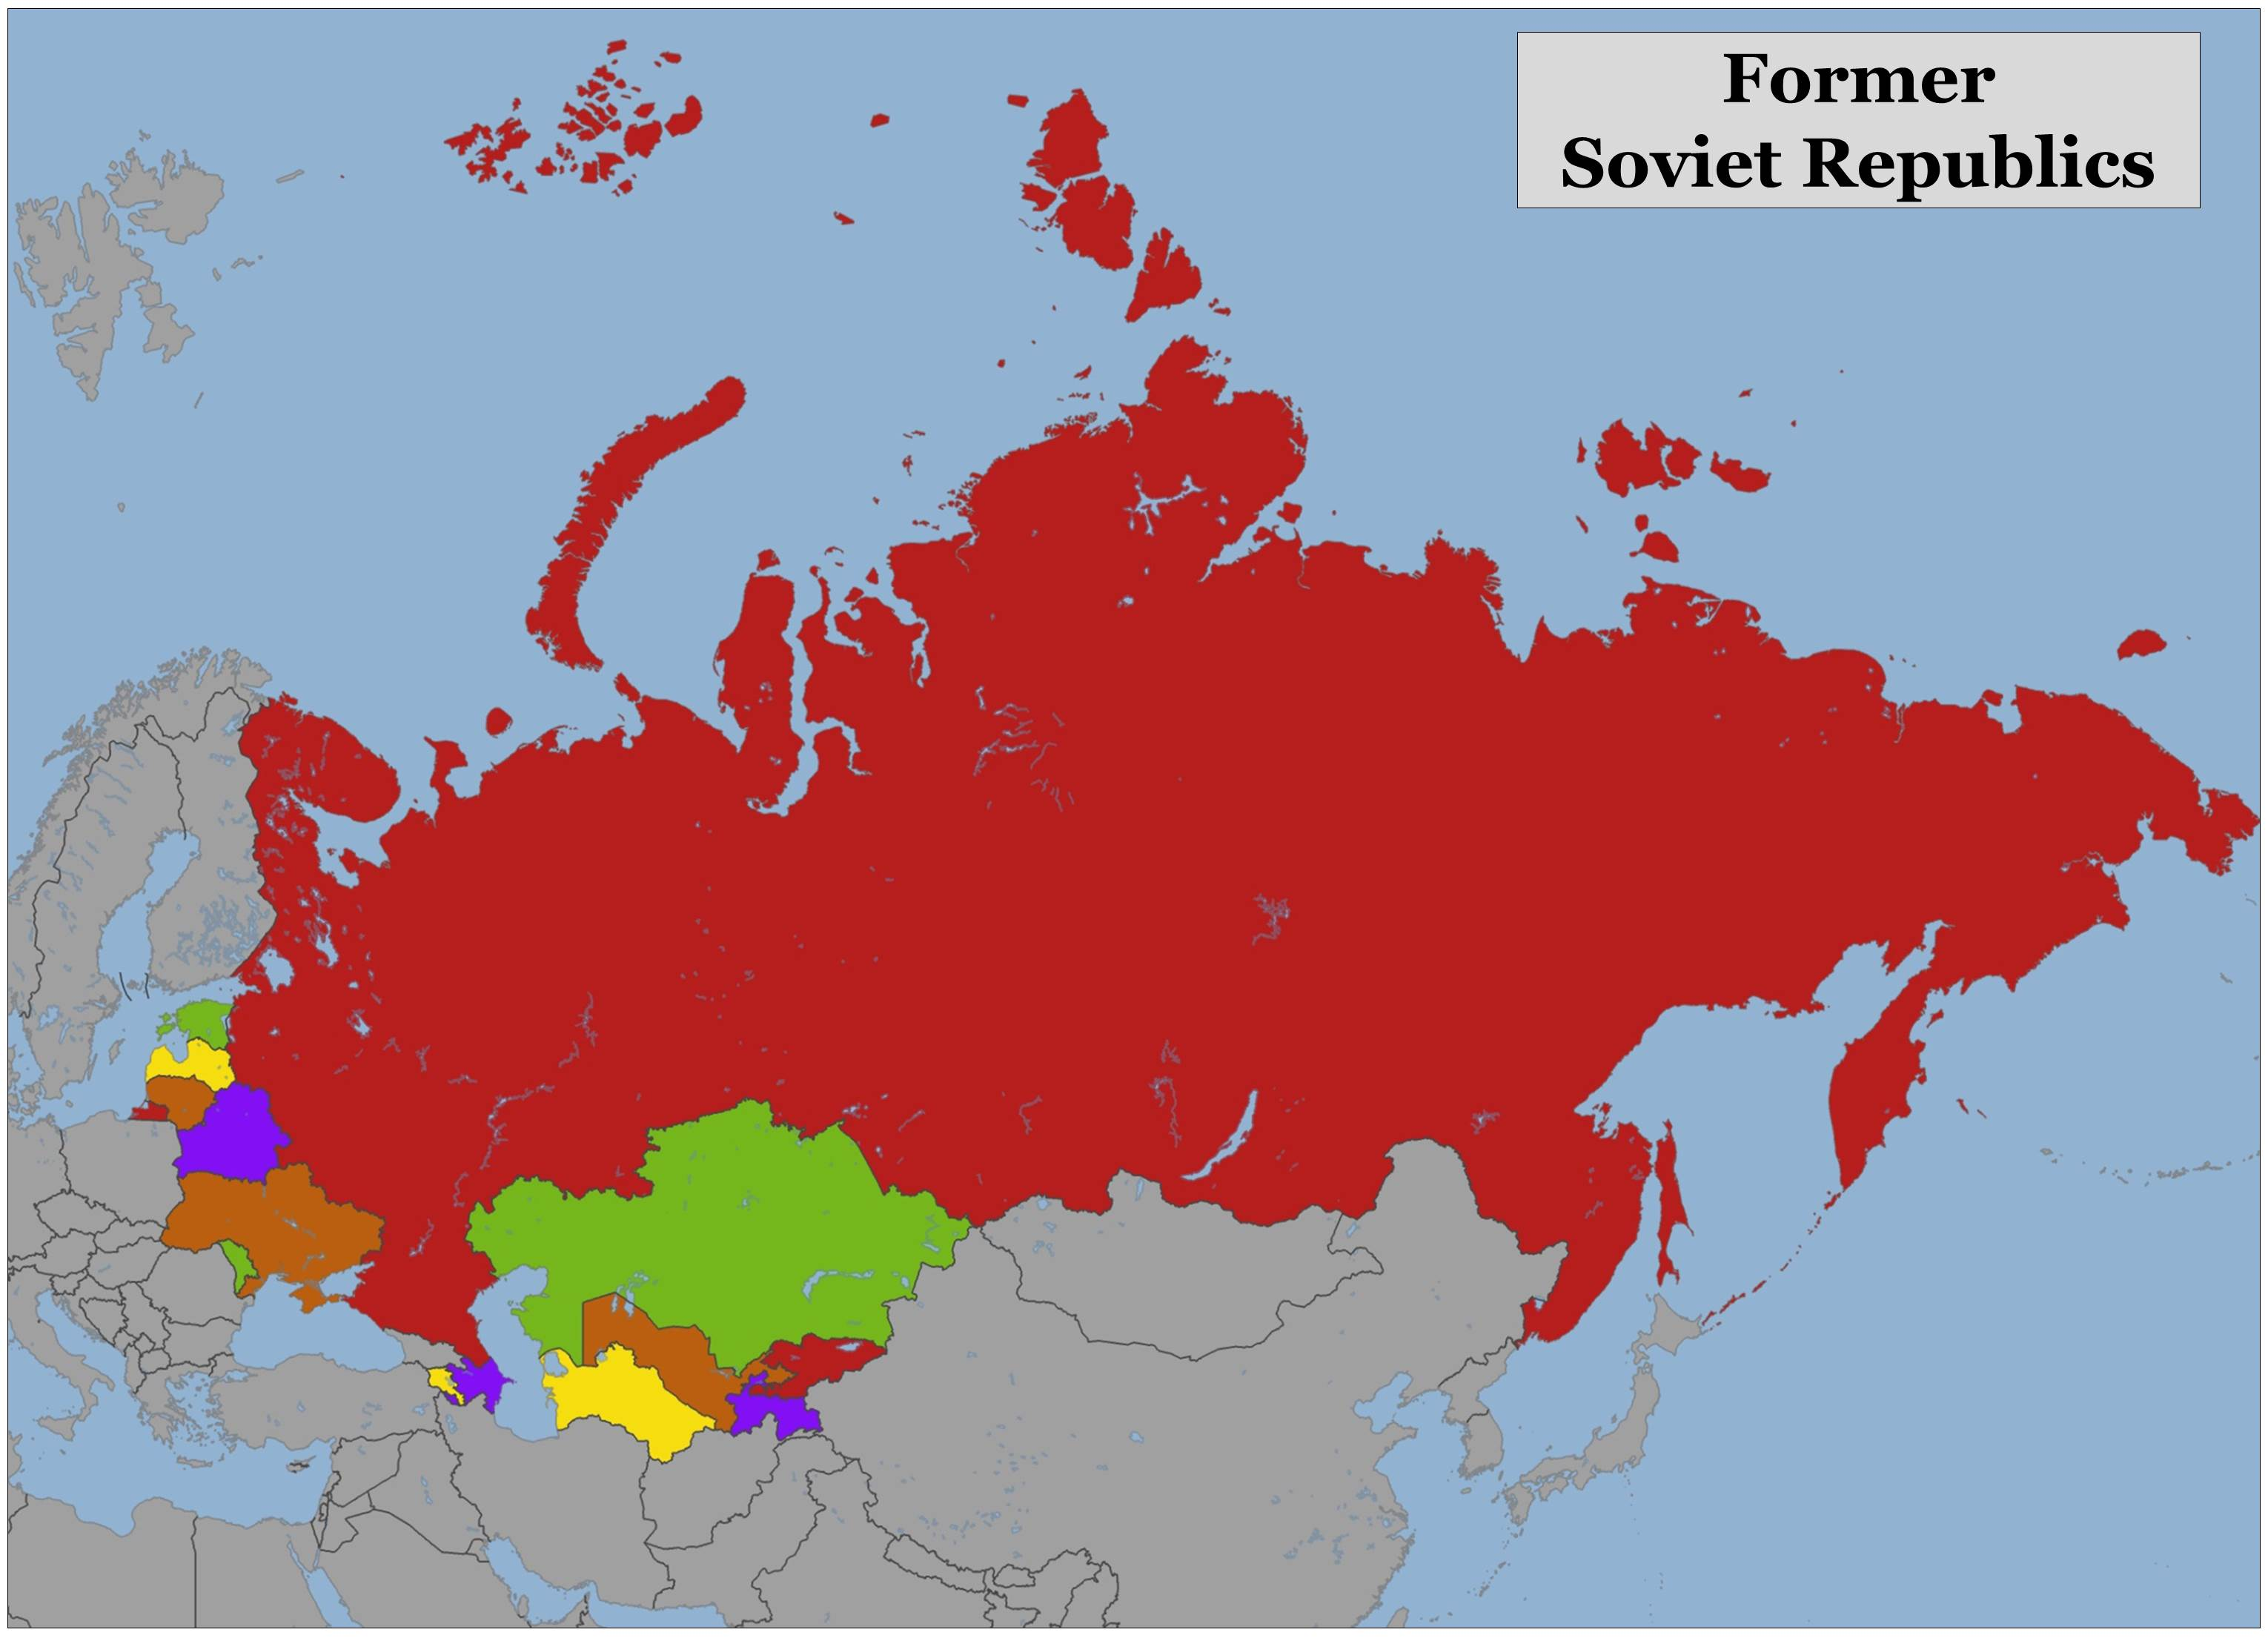 Blank Color Map of the Former Soviet